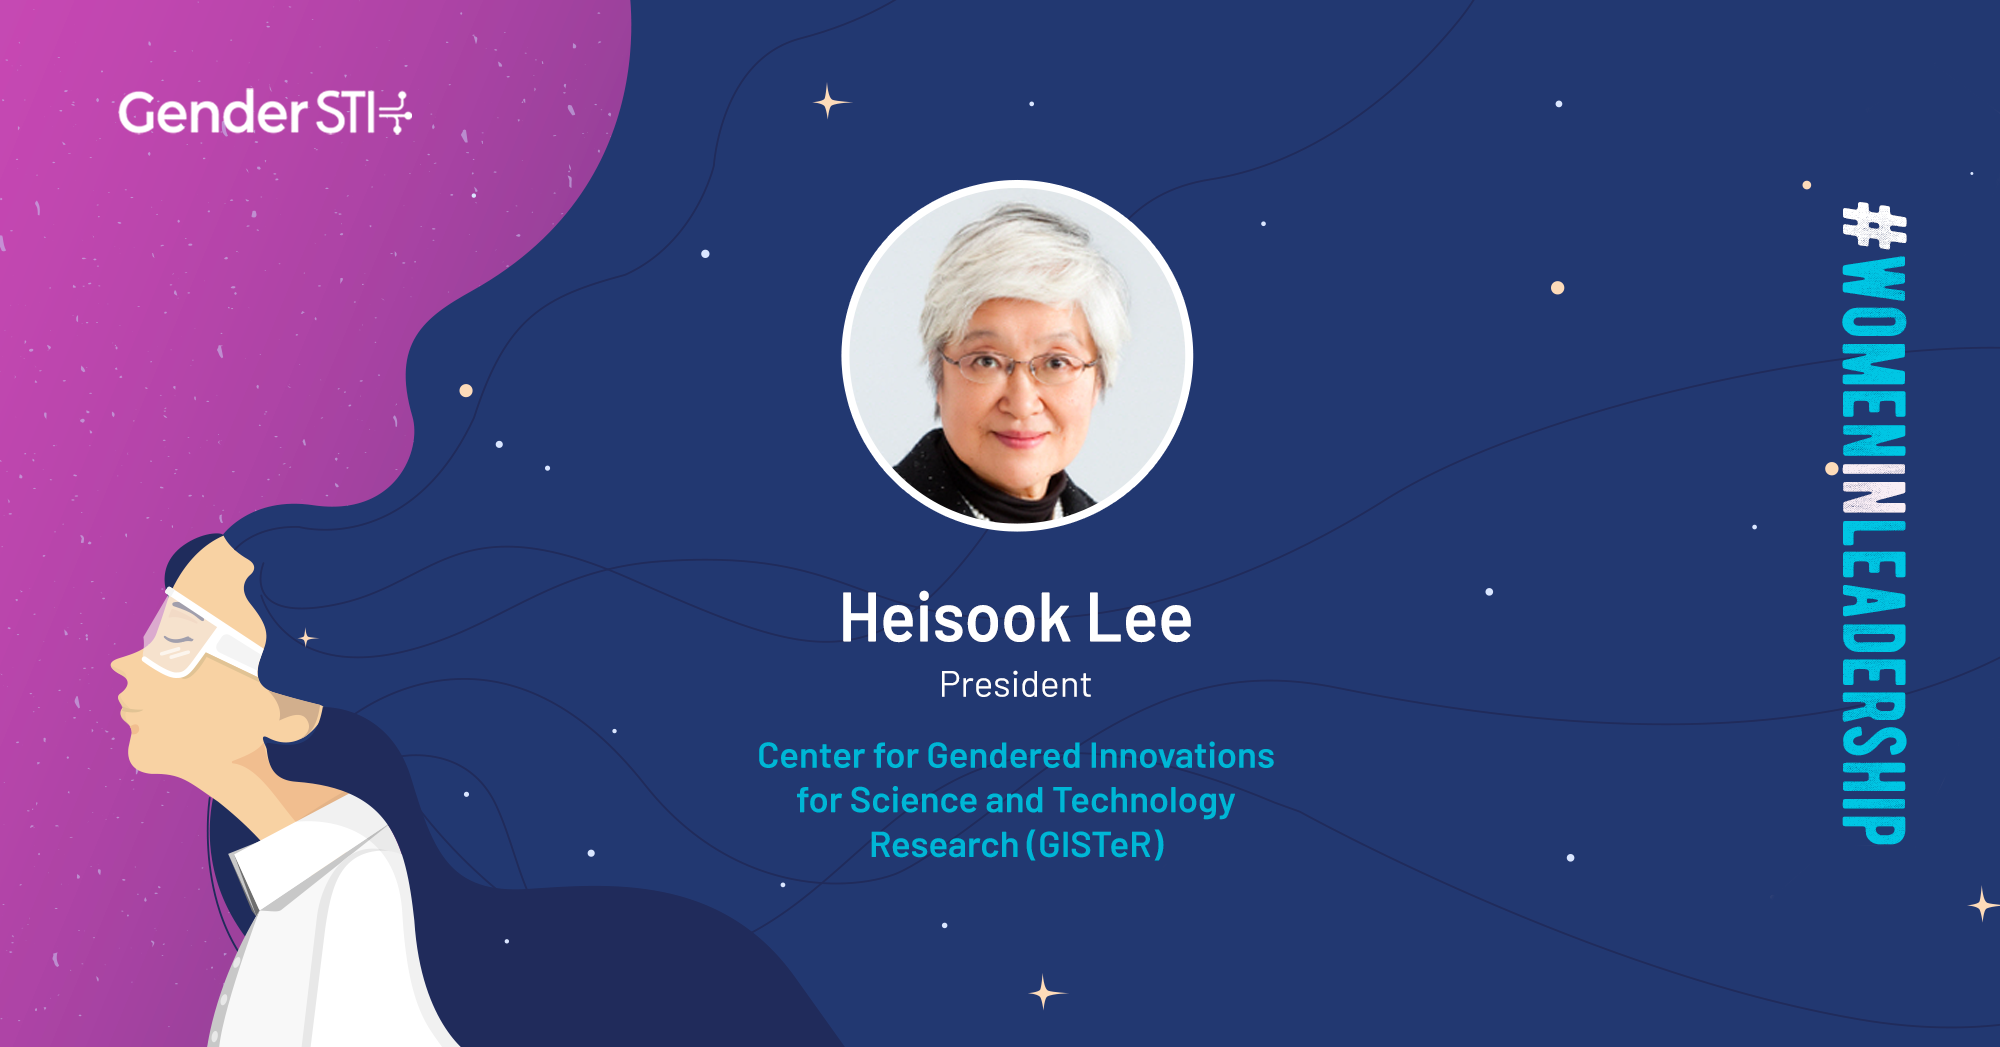 Heisook Lee, President of the Center for Gendered Innovations in Science and Technology Research (GISTeR), is one of Gender STI's #WomenInLeadership nominees.